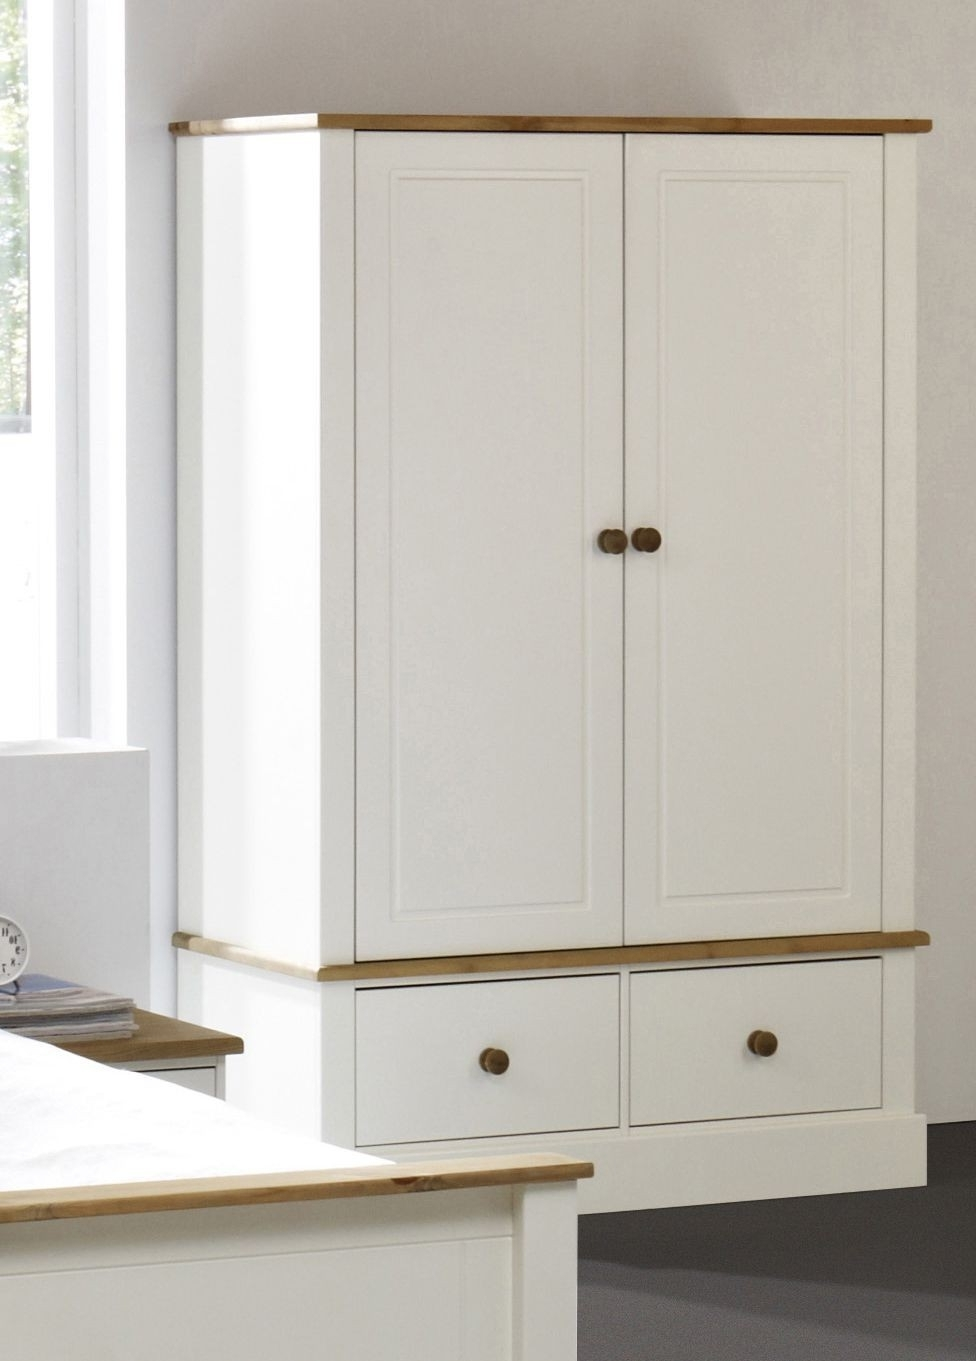 Preferred Double Wardrobes With Regard To White Wardrobe And Drawers With Mirror Triple Large This Will Be A (View 6 of 15)